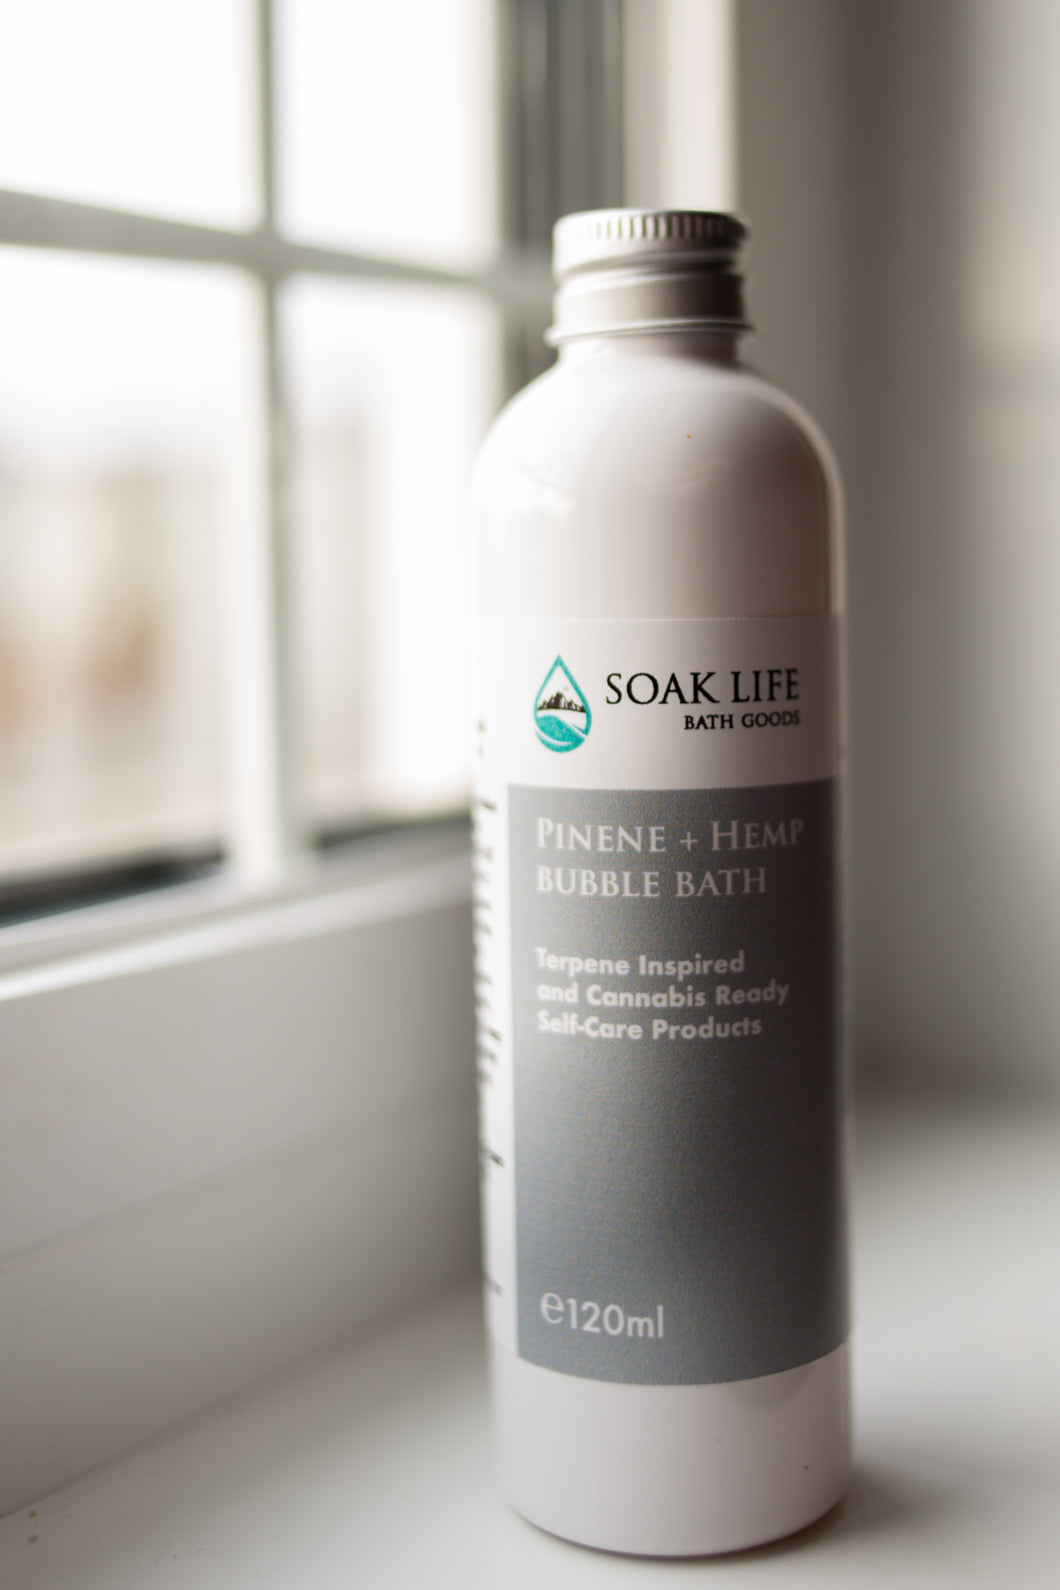 Pinene + Hemp Bubble Bath